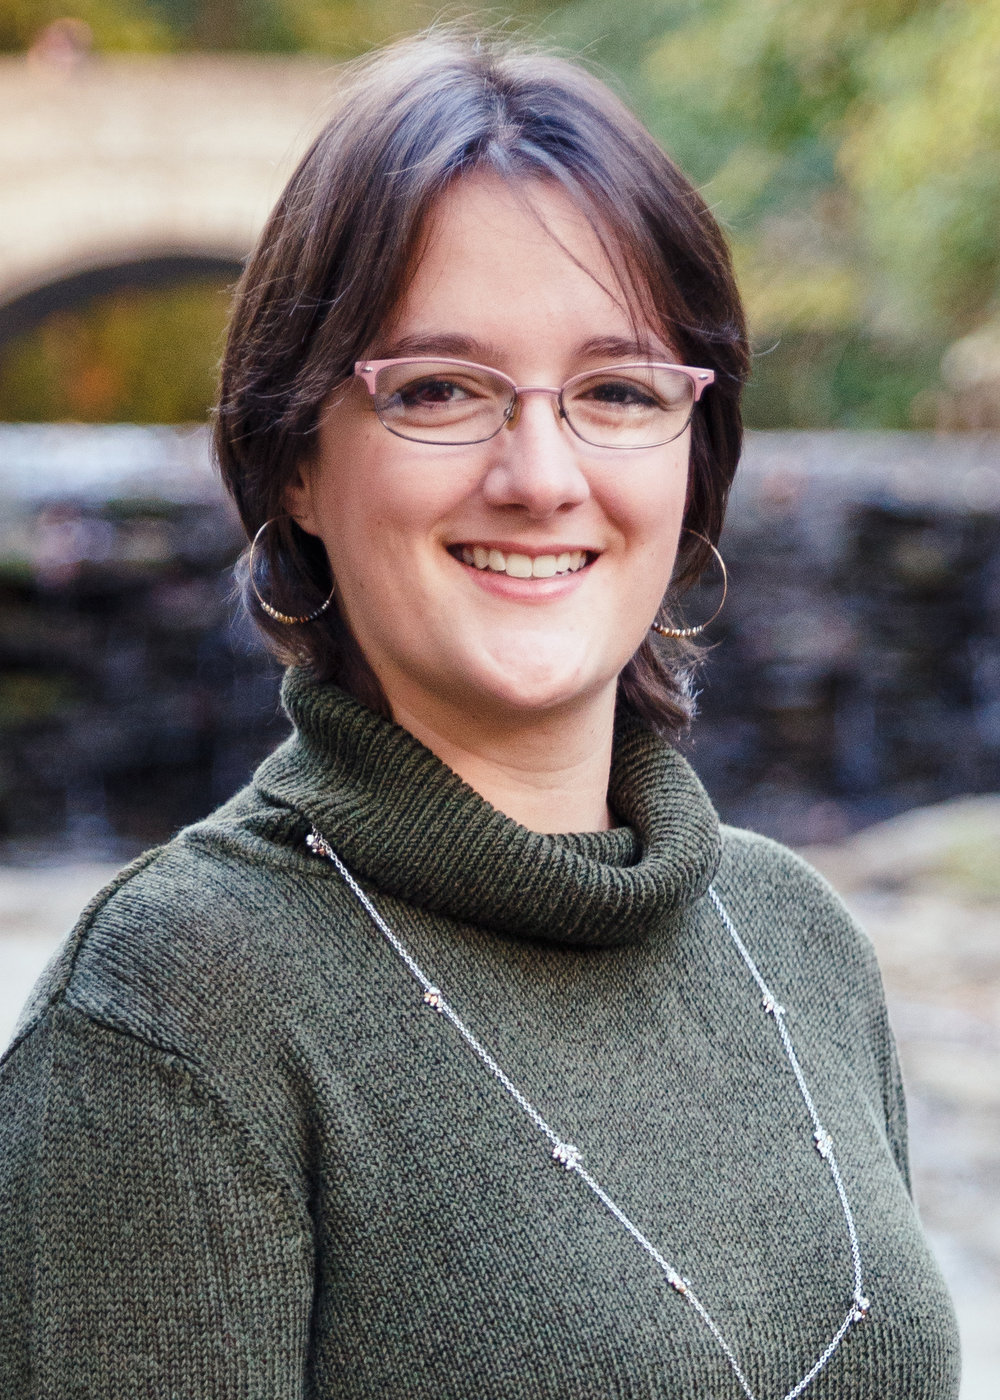 Claire Baker, B.F.A., Reading Tutor & Writing Specialist